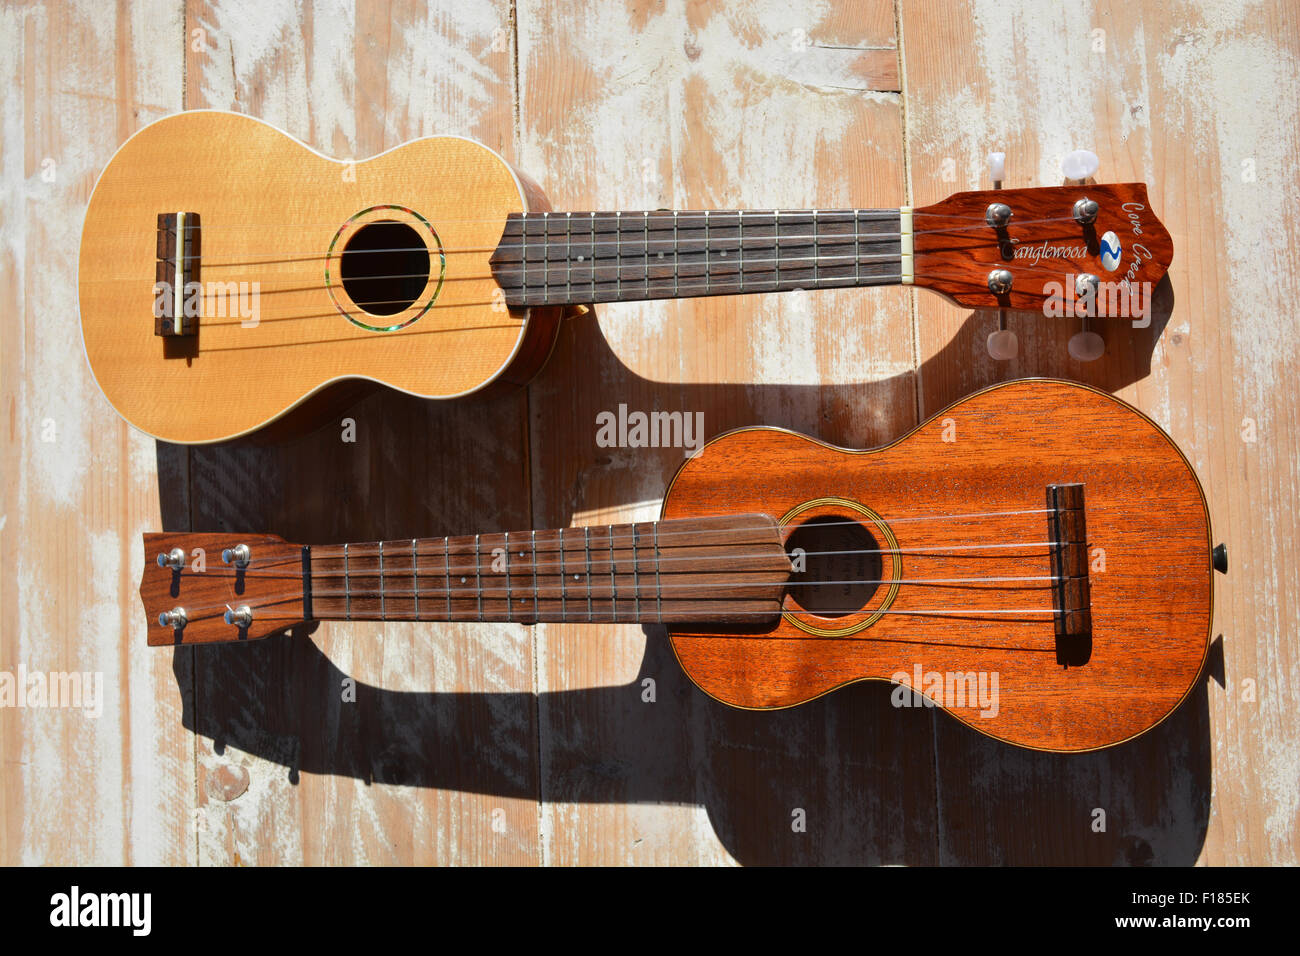 Tanglewood 'Cove Creek' soprano ukulele Model TU2,  and a Liam Kirby 'Ike' soprano ukulele - Stock Image